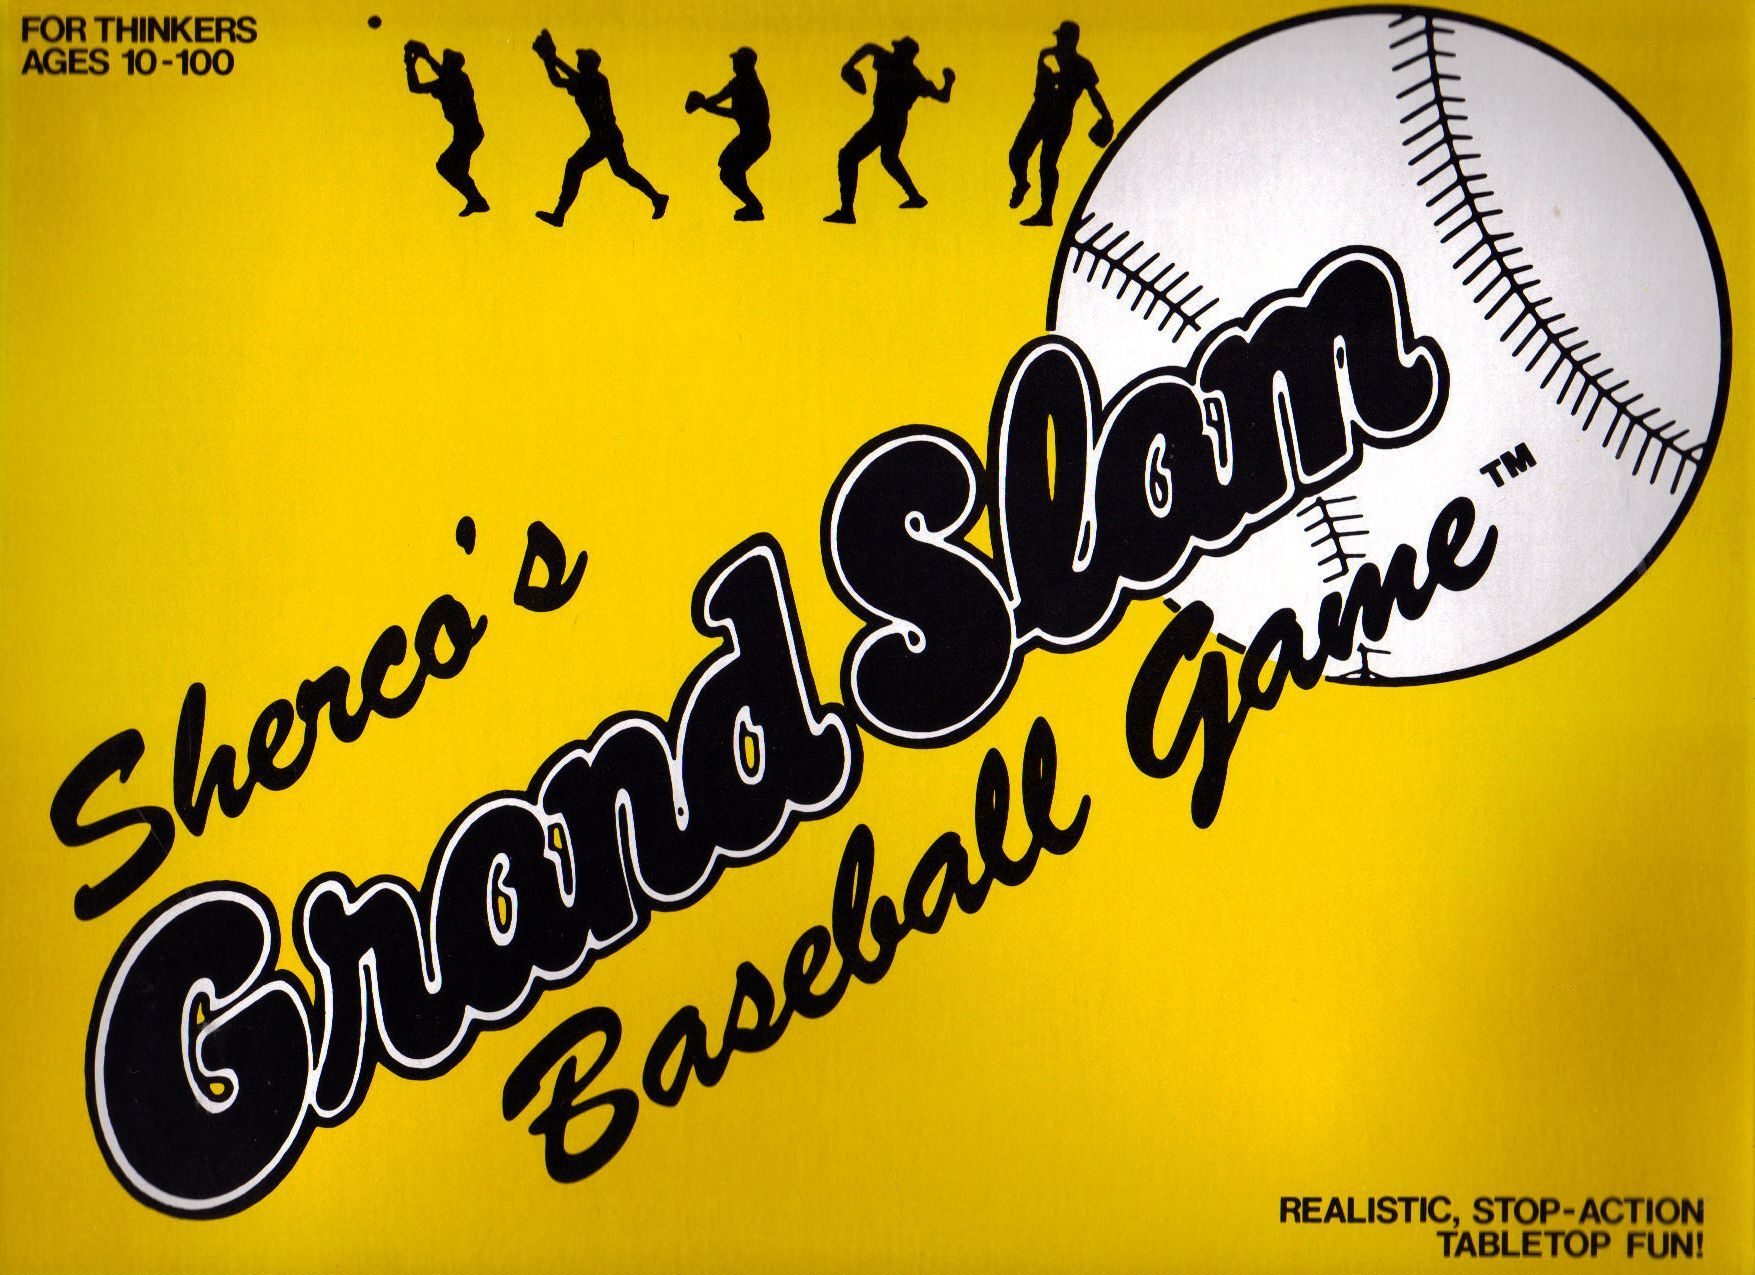 Sherco's Grand Slam Baseball Game